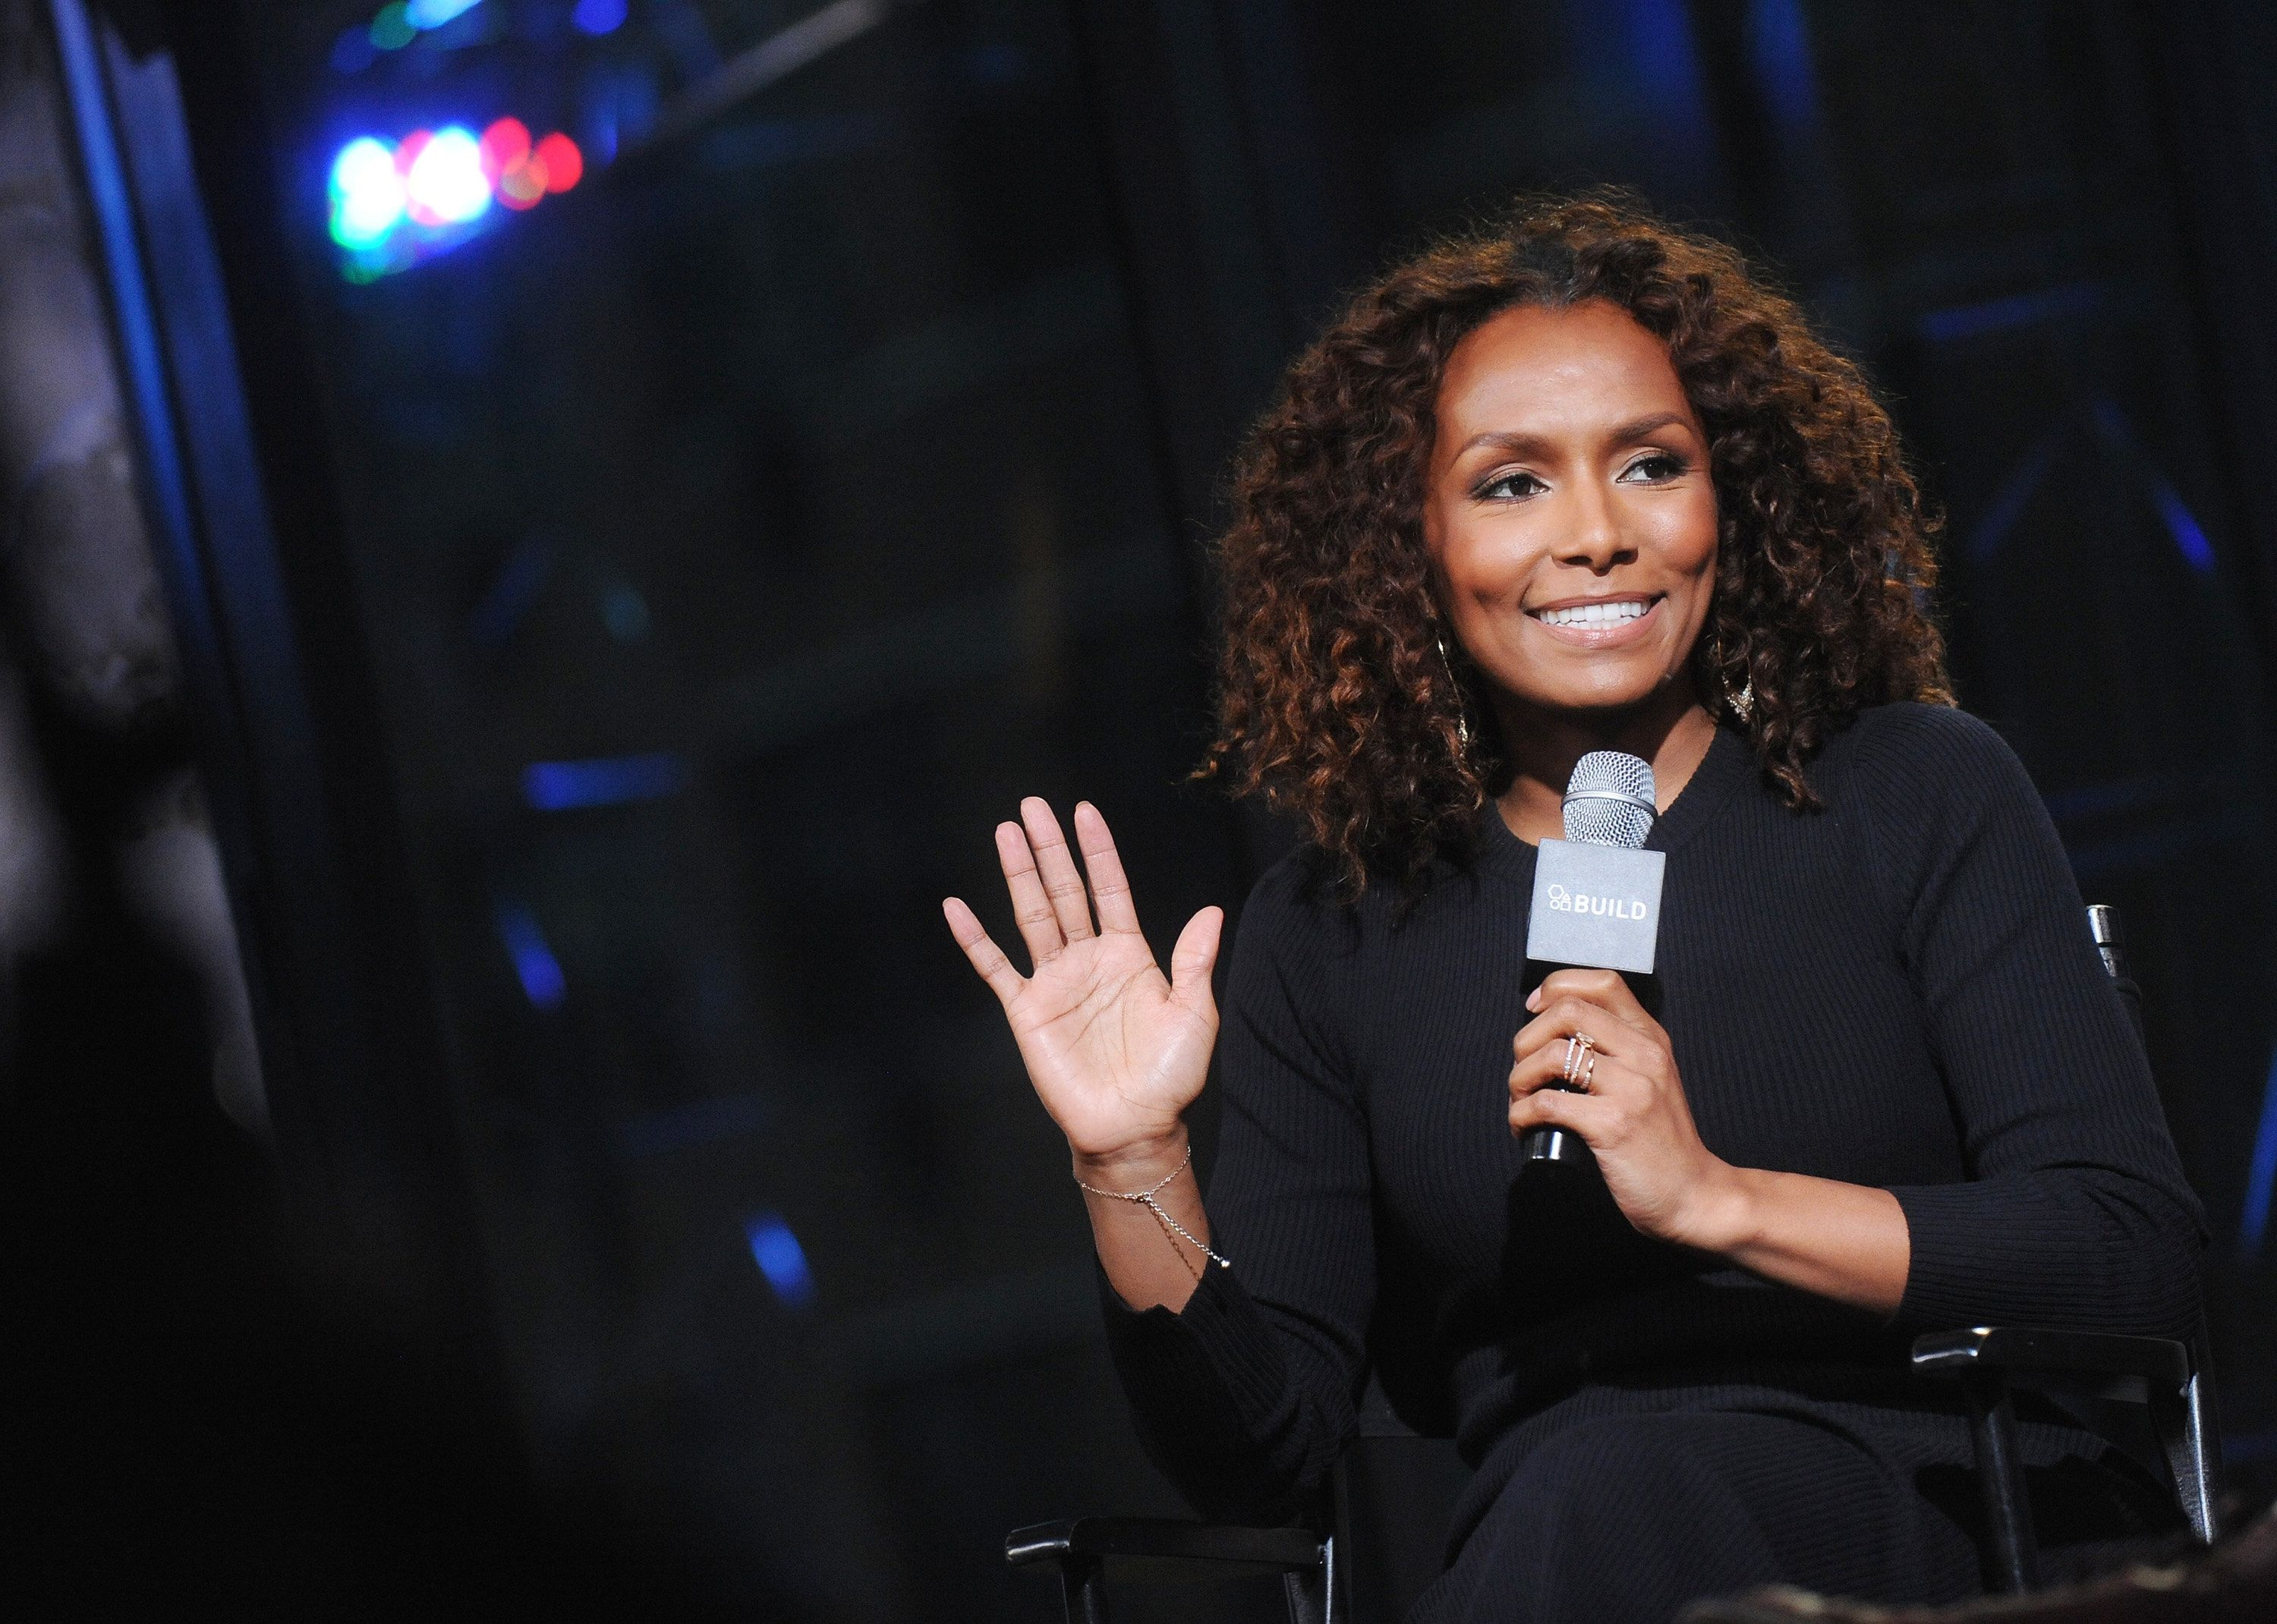 NEW YORK, NY - DECEMBER 01:  Janet Mock attends Build Presents 'The Trans List' at AOL HQ on December 1, 2016 in New York City.  (Photo by Desiree Navarro/Getty Images)